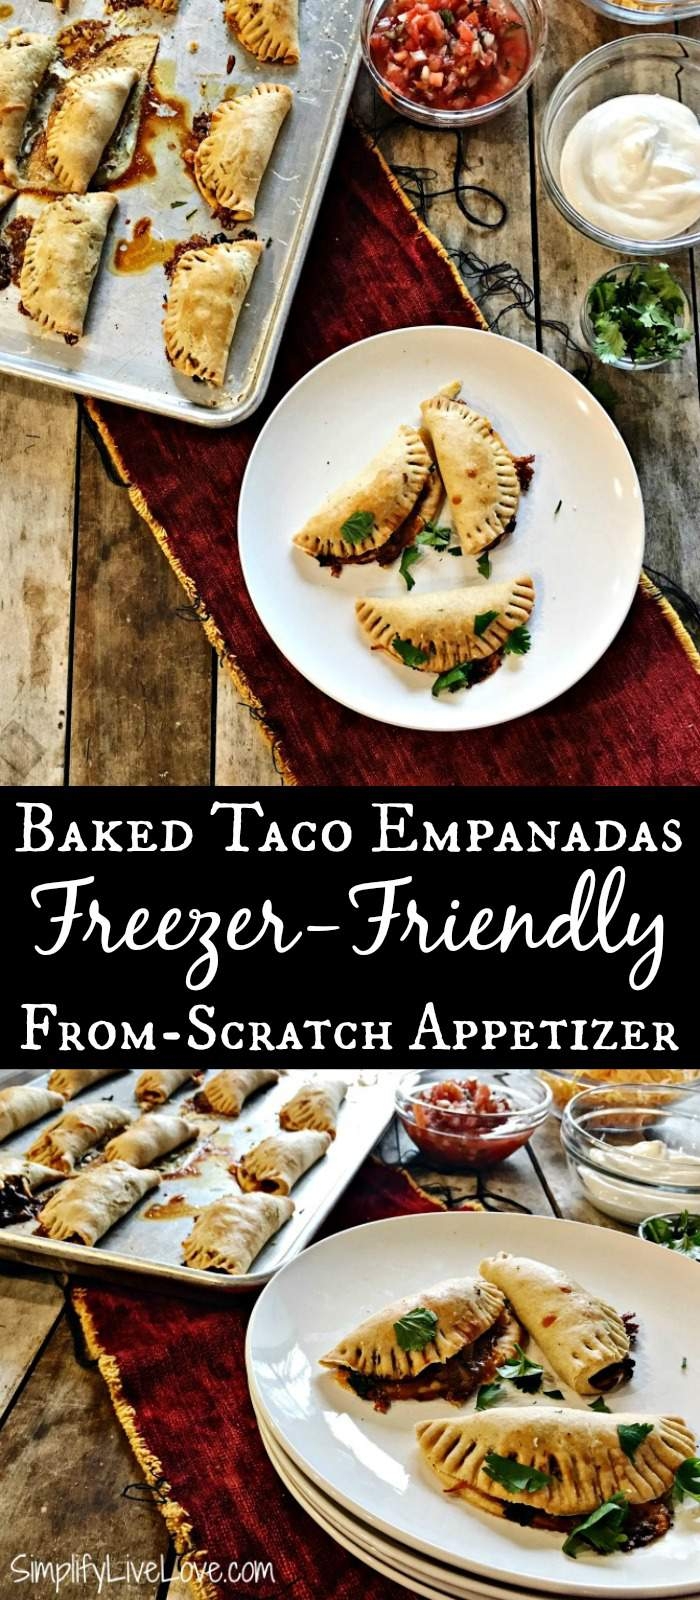 A delicious appetizer - perfect to make ahead and serve at parties or for dinner as well, these freezer friendly Baked Taco Empanadas are fun and tasty! #gamedayappetizer #tacotuesday #freezerfriendlyrecipe